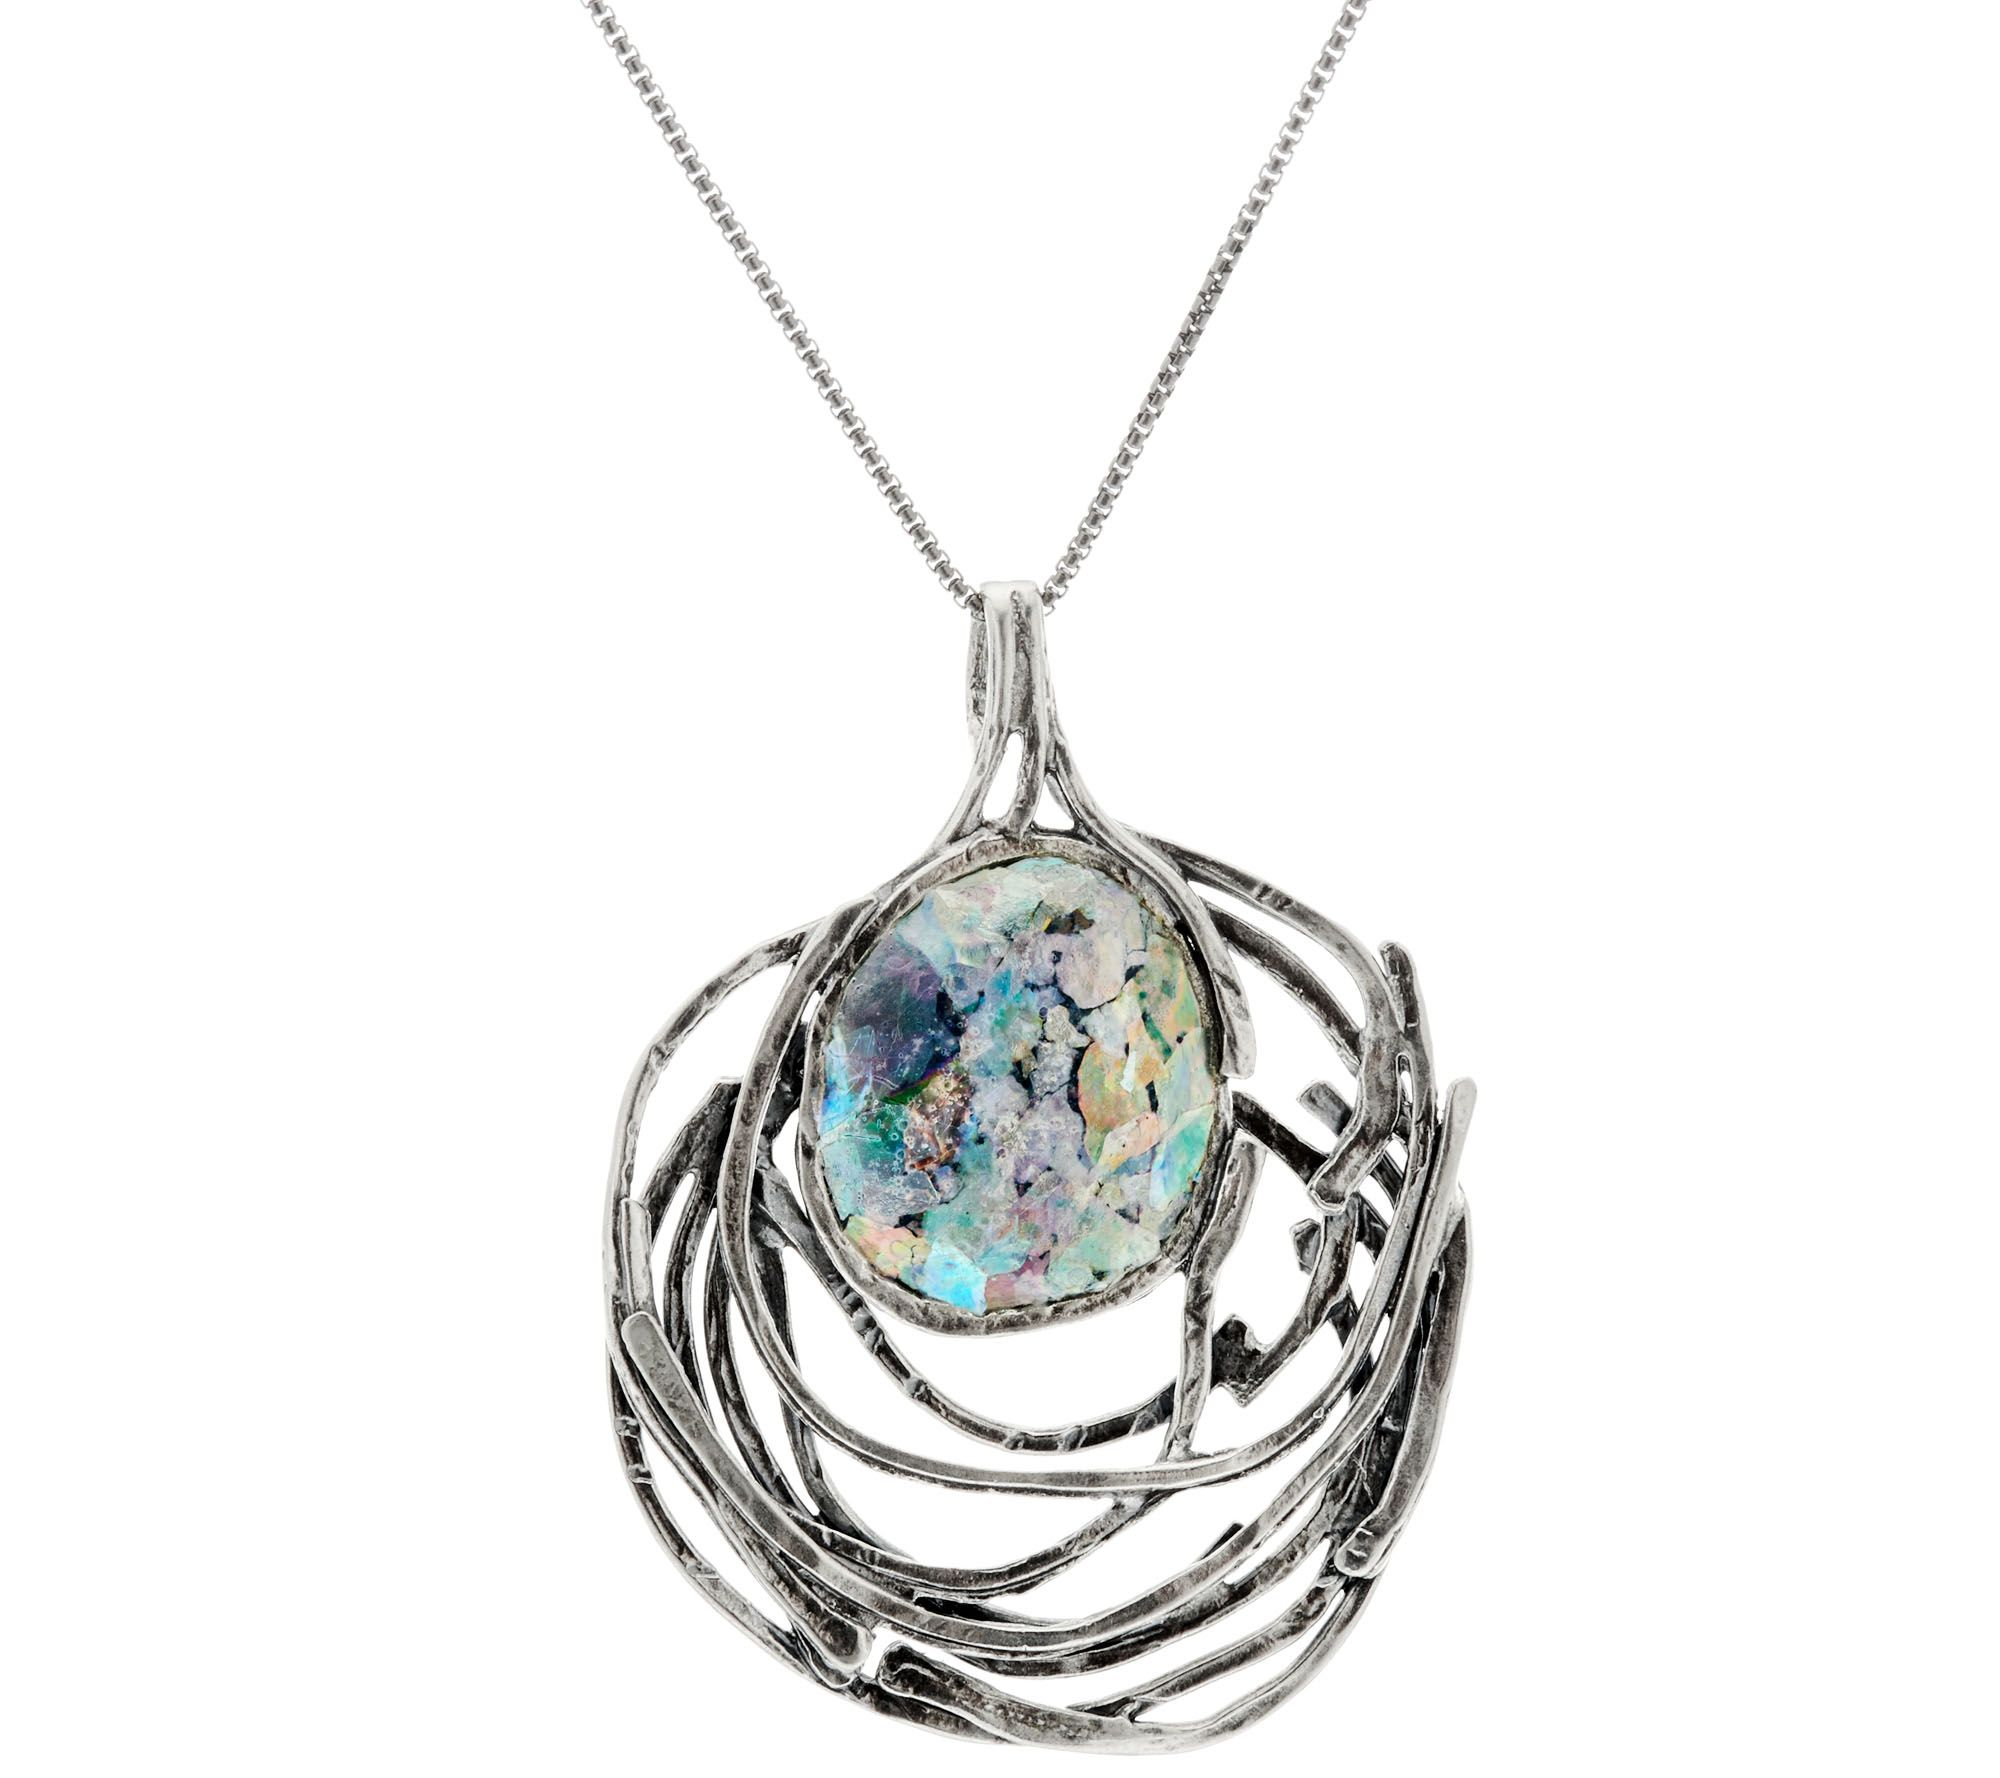 sterling openwork glass pendant w chain by or paz